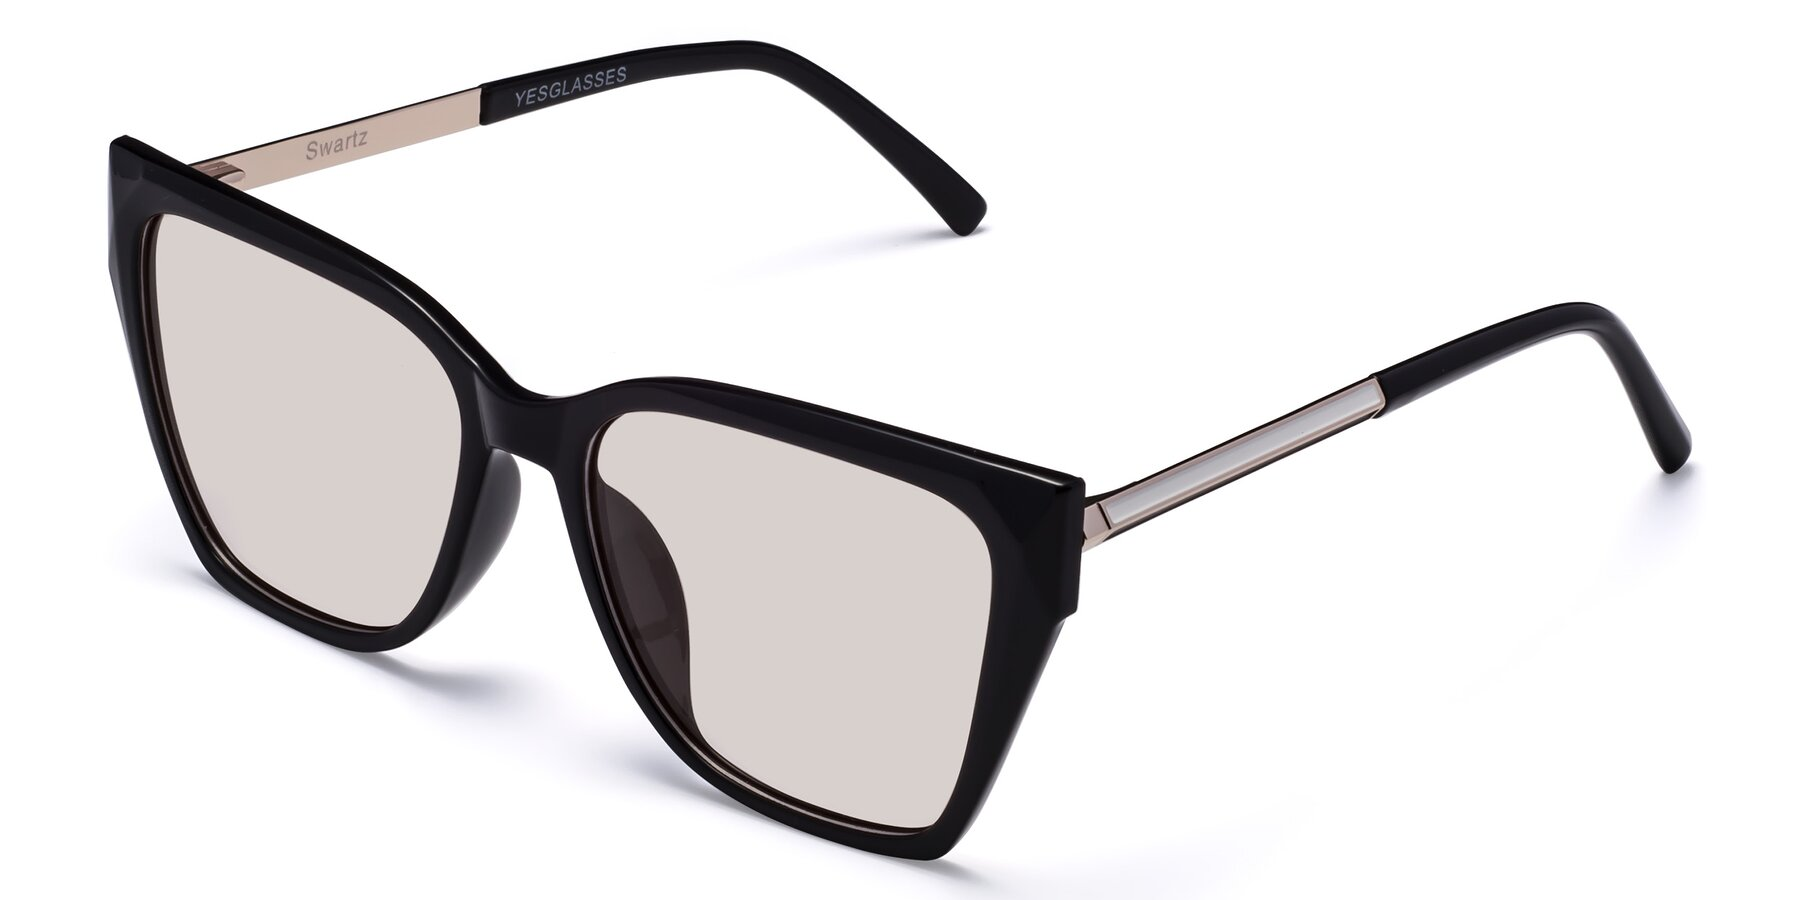 Angle of Swartz in Black with Light Brown Tinted Lenses